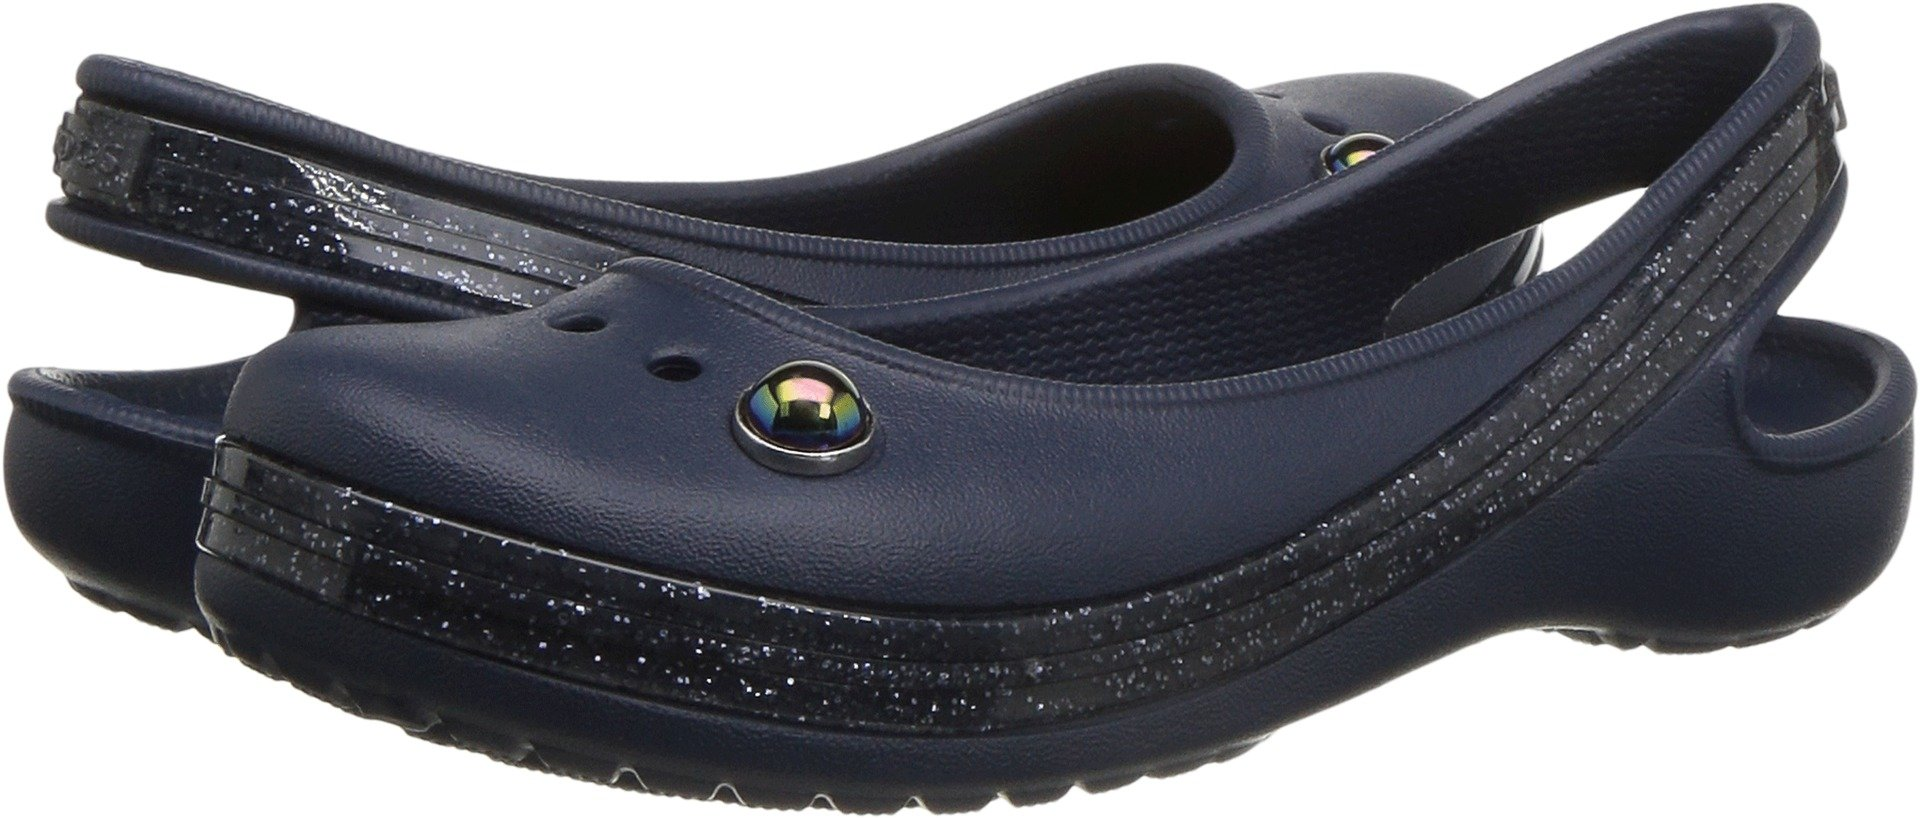 Crocs Girls' Genna II Sprkl BND Slng K Ballet Flat, Navy, 11 M US Little Kid